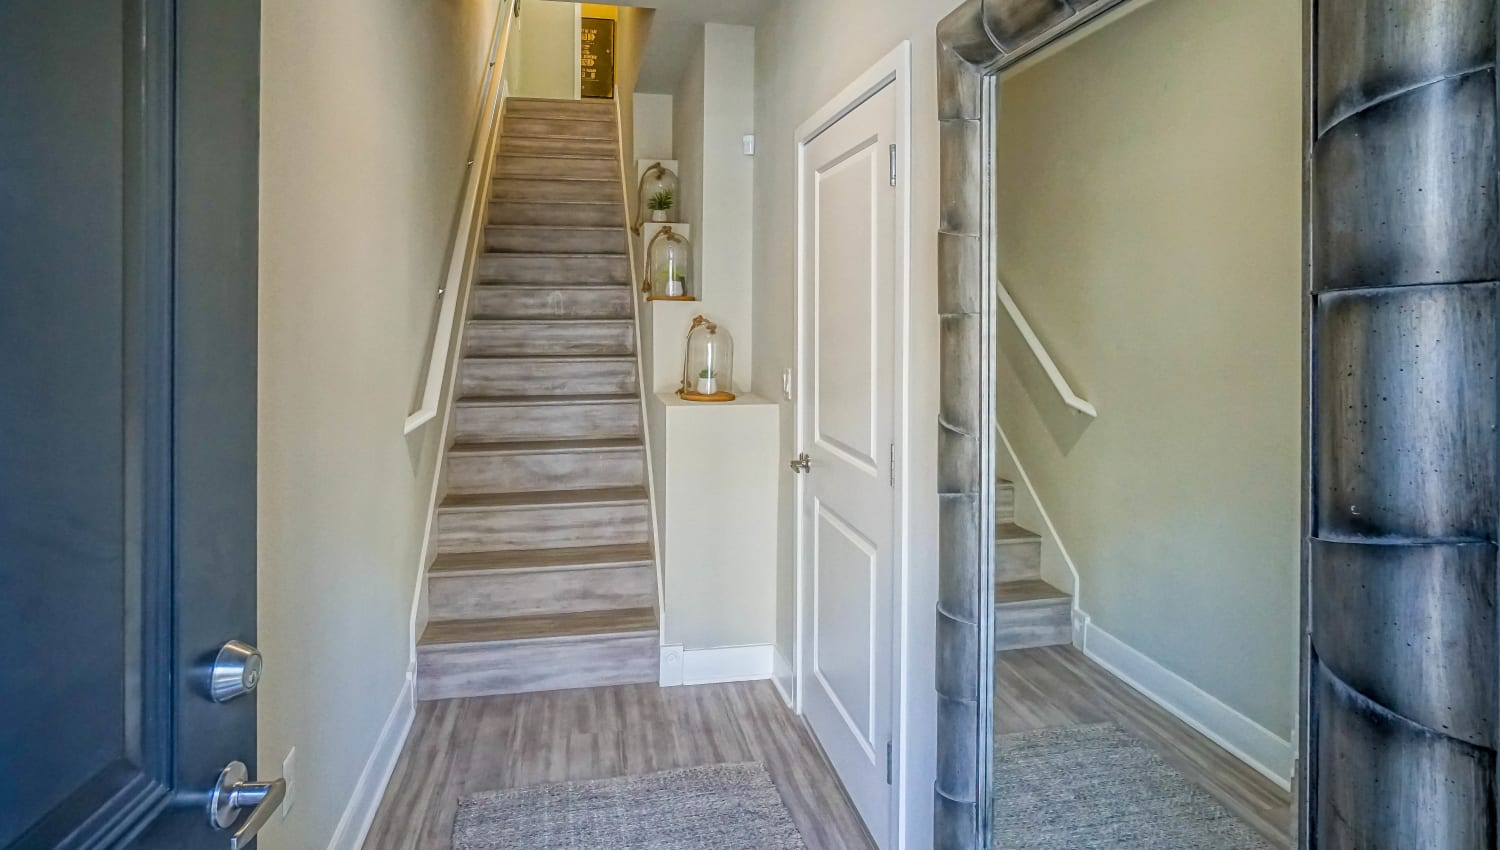 Stairs to the upper floor from the entrance of a model townhouse at Olympus Northpoint in Albuquerque, New Mexico